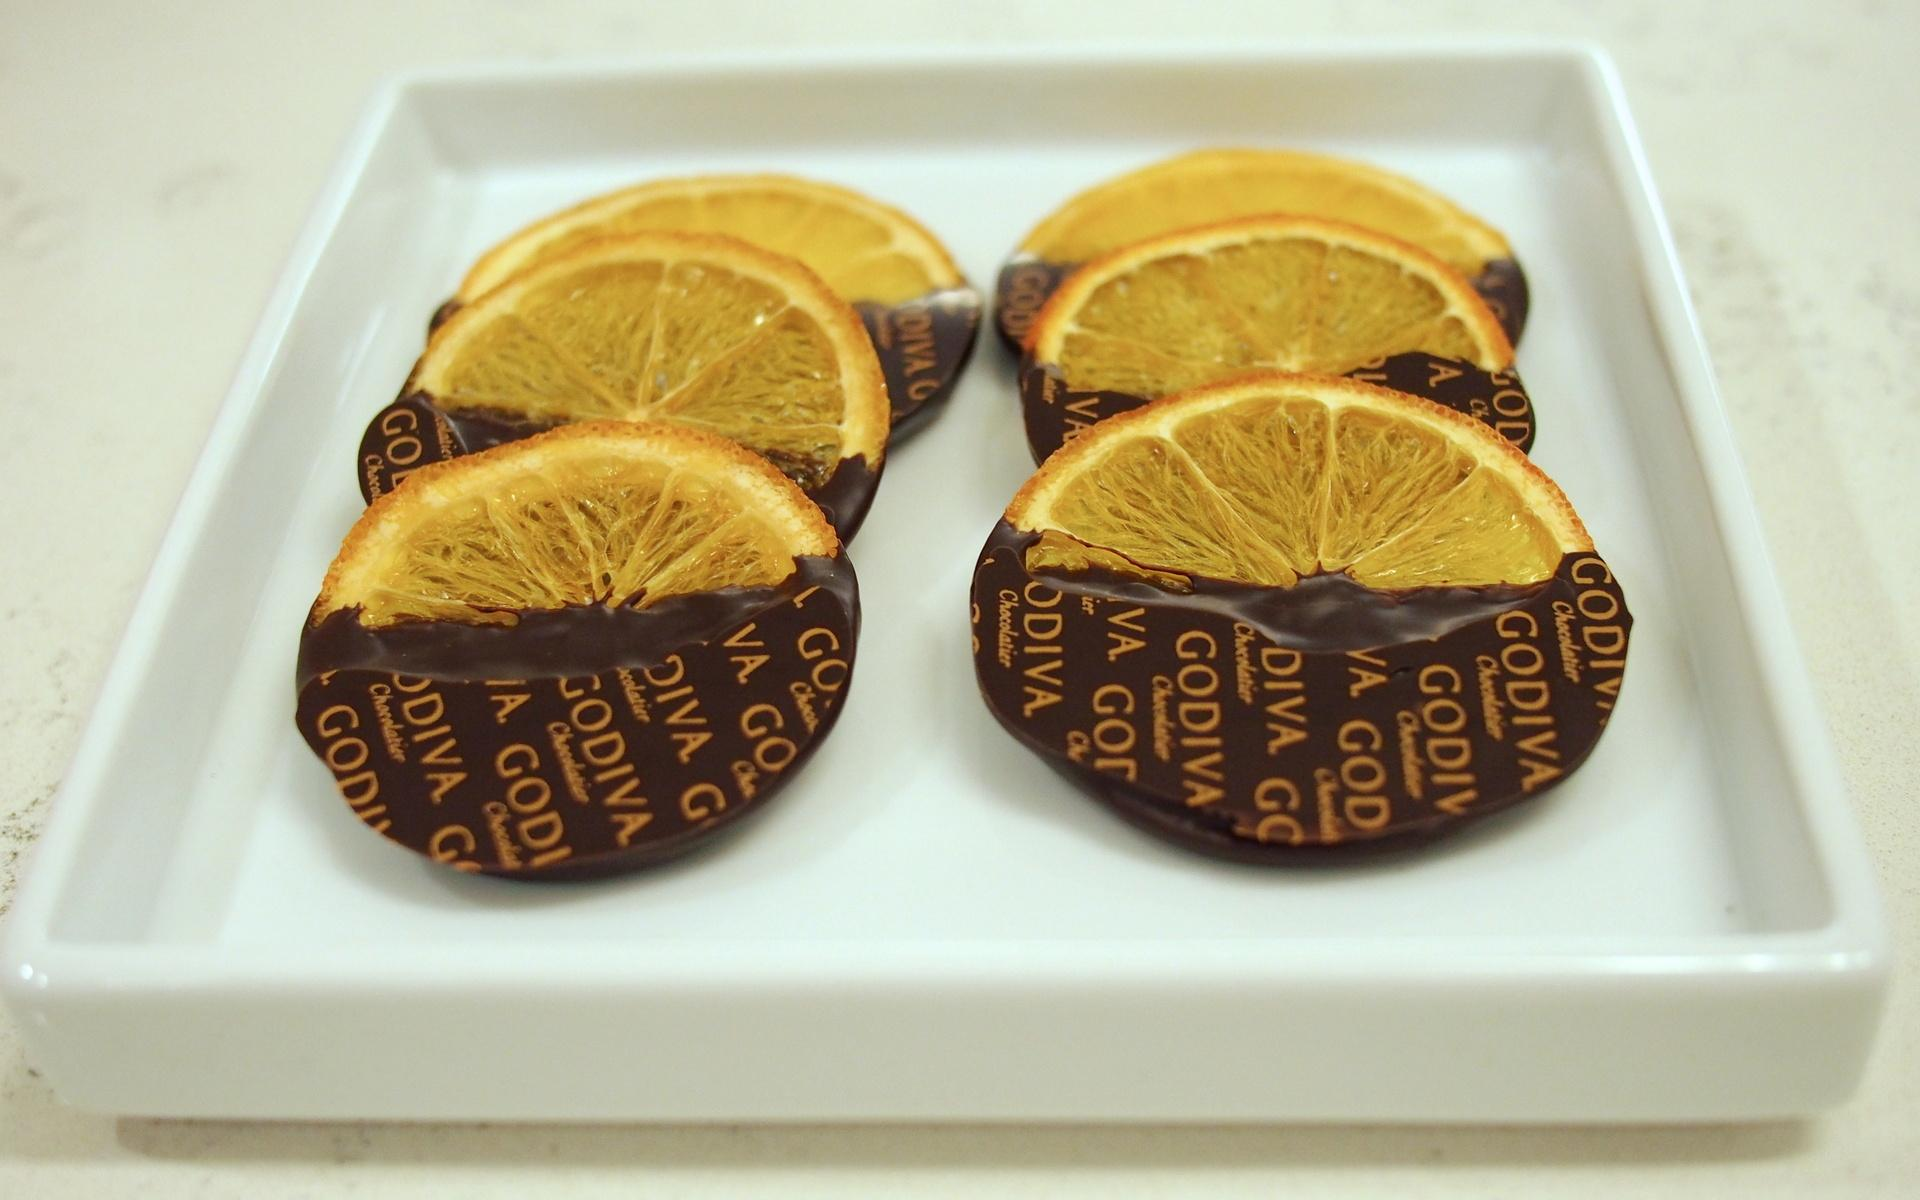 1920x1200 Godiva, Godiva Logo, Chocolate Orange, Godiva Chocolate